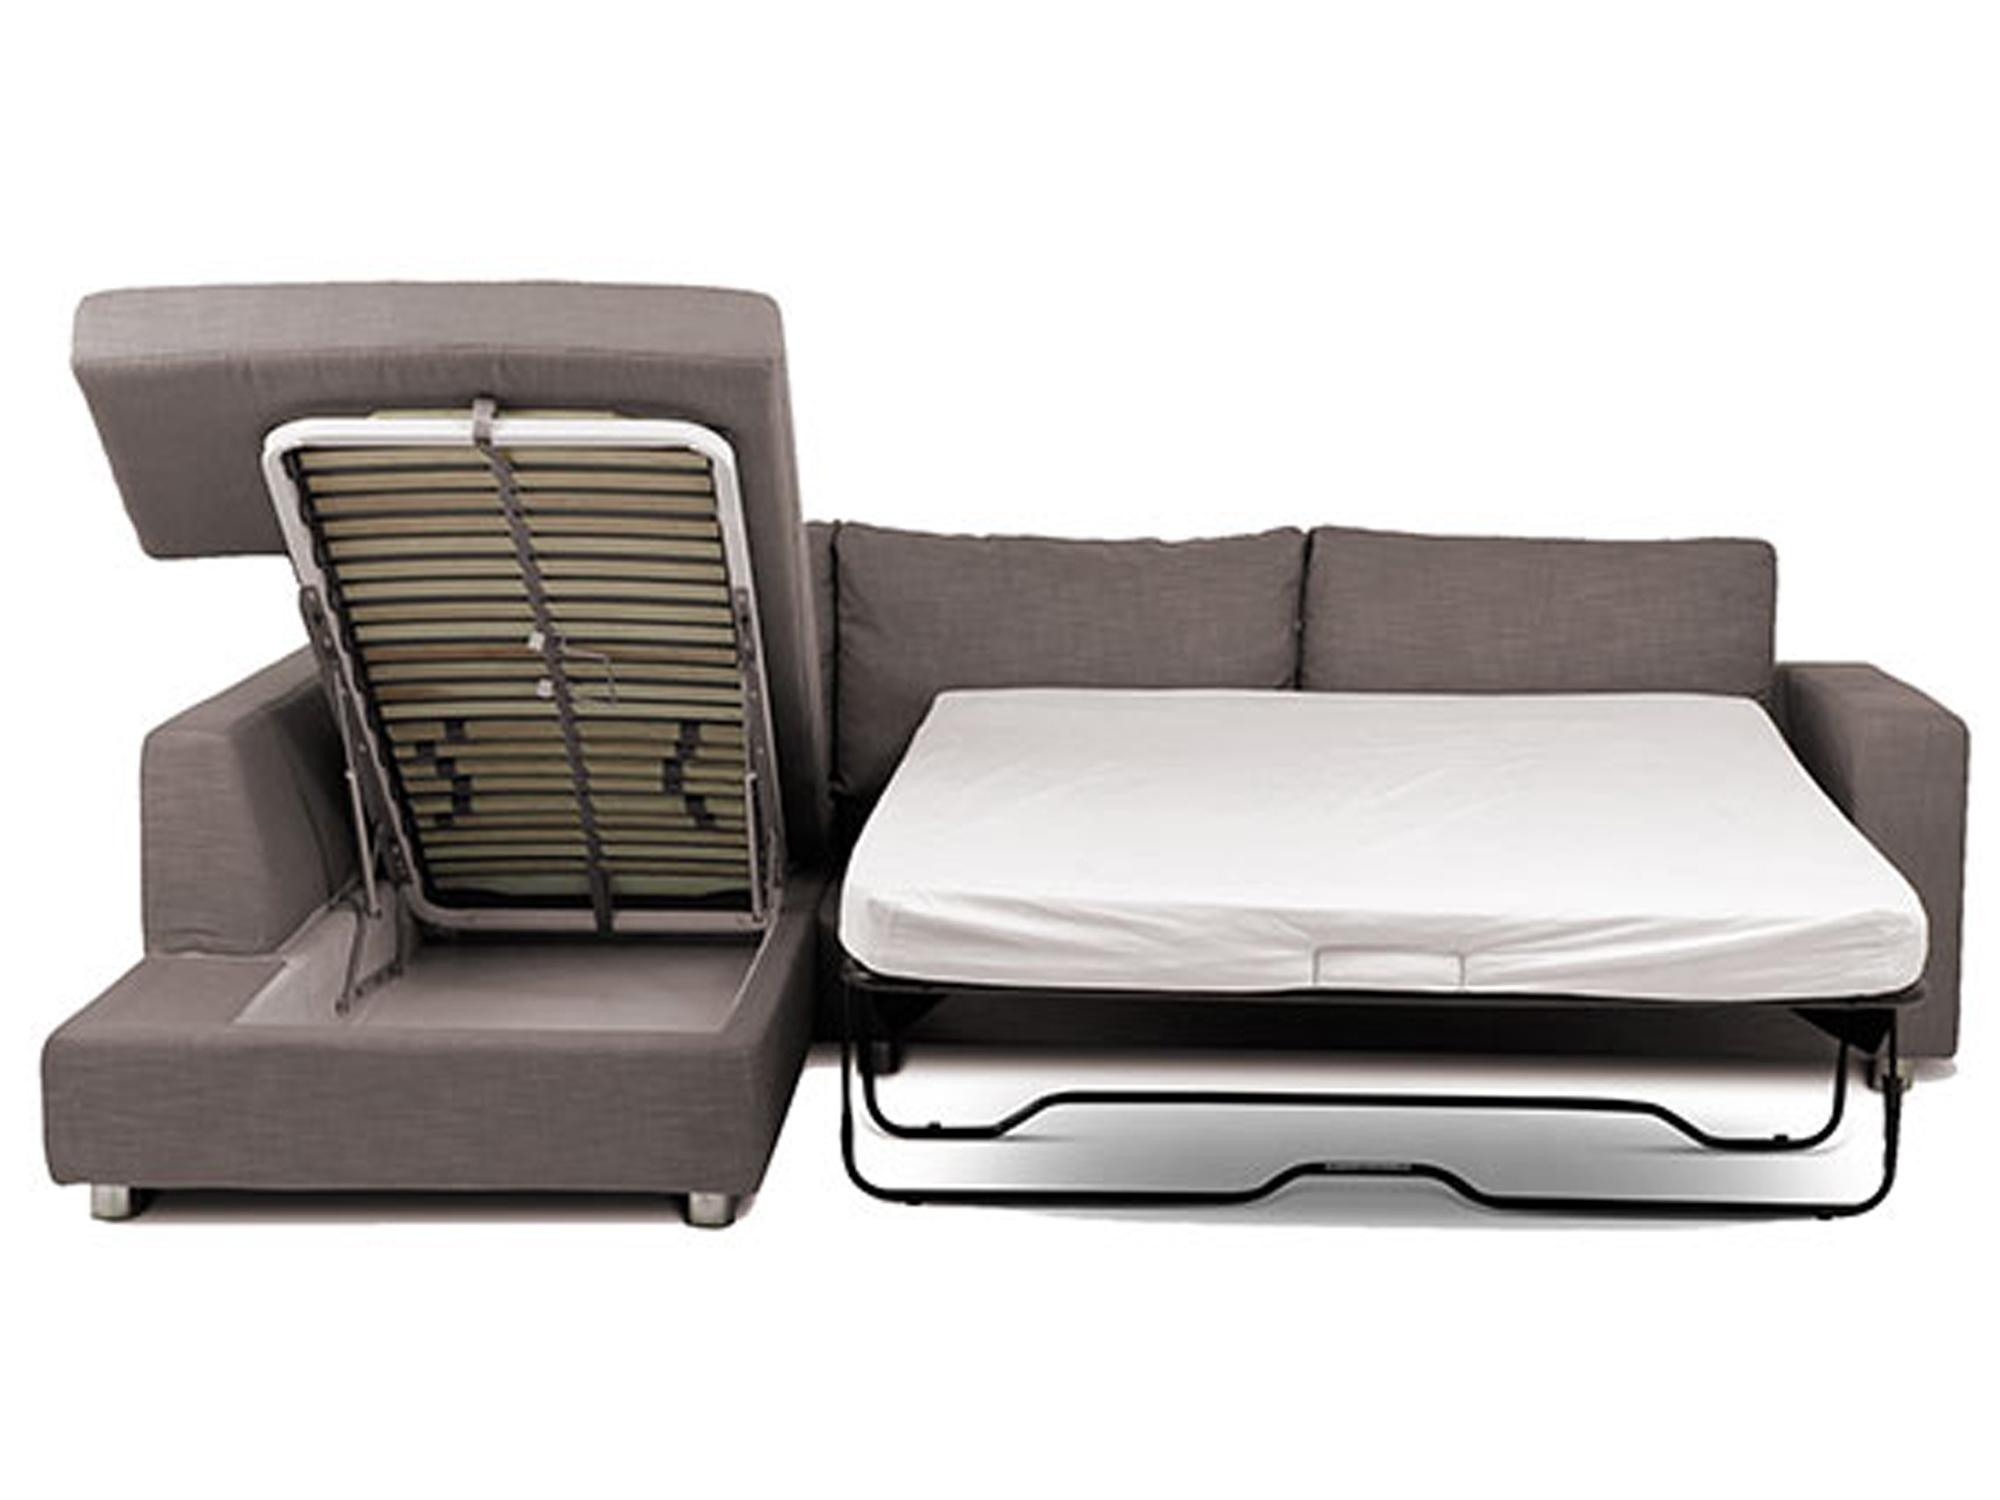 Sofas: Classic Meets Contemporary Chaise Sofa Bed For Ideal Living For Sofas With Beds (View 3 of 22)